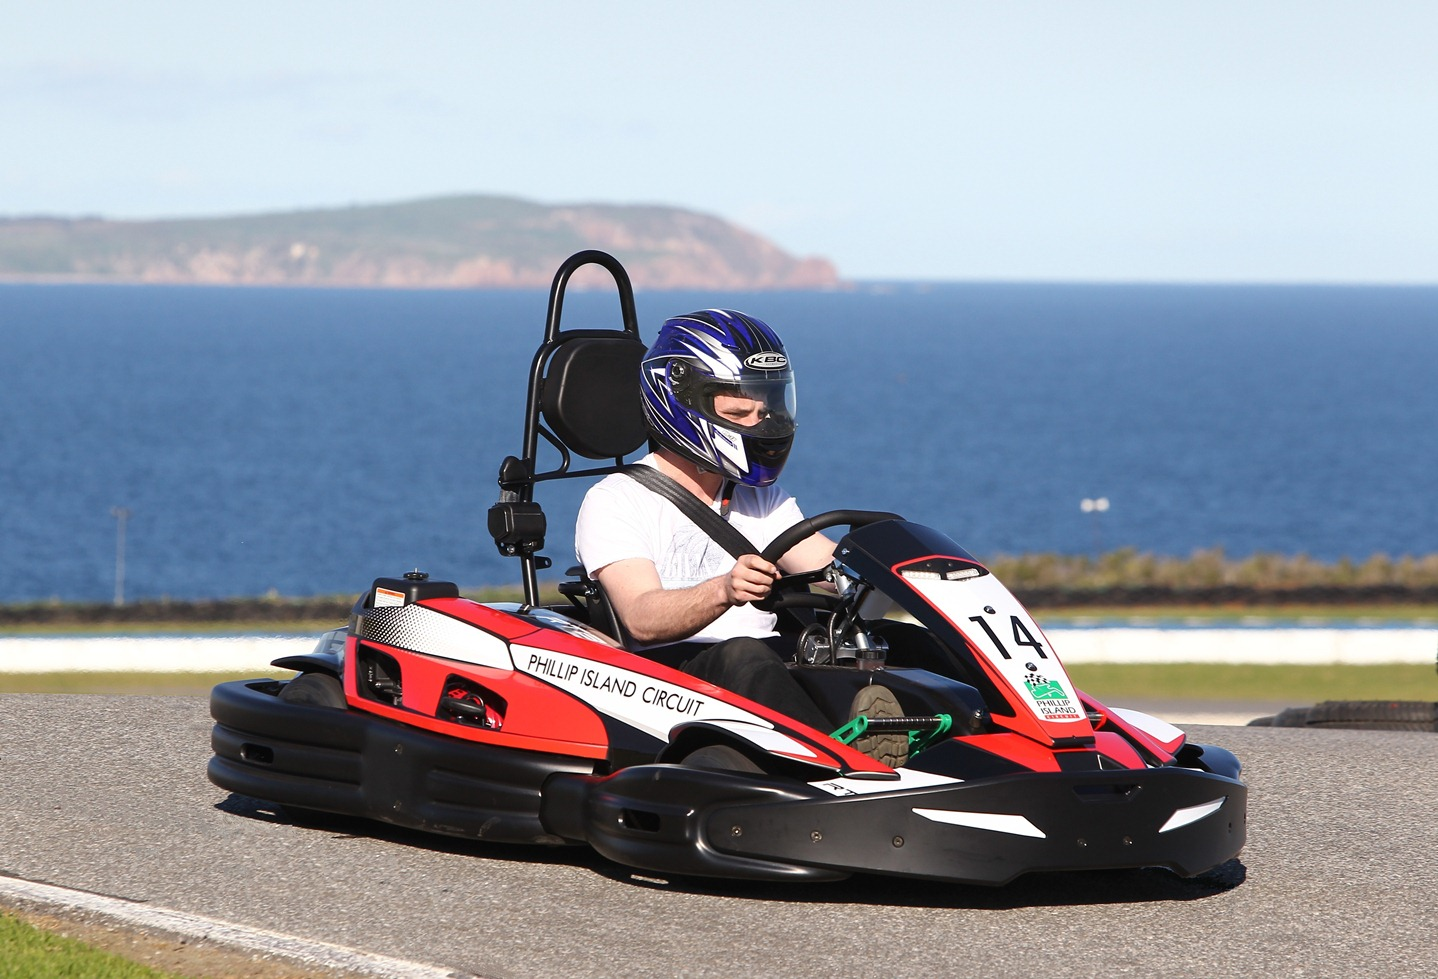 Phillip Island Grand Prix Circuit - QLD Tourism